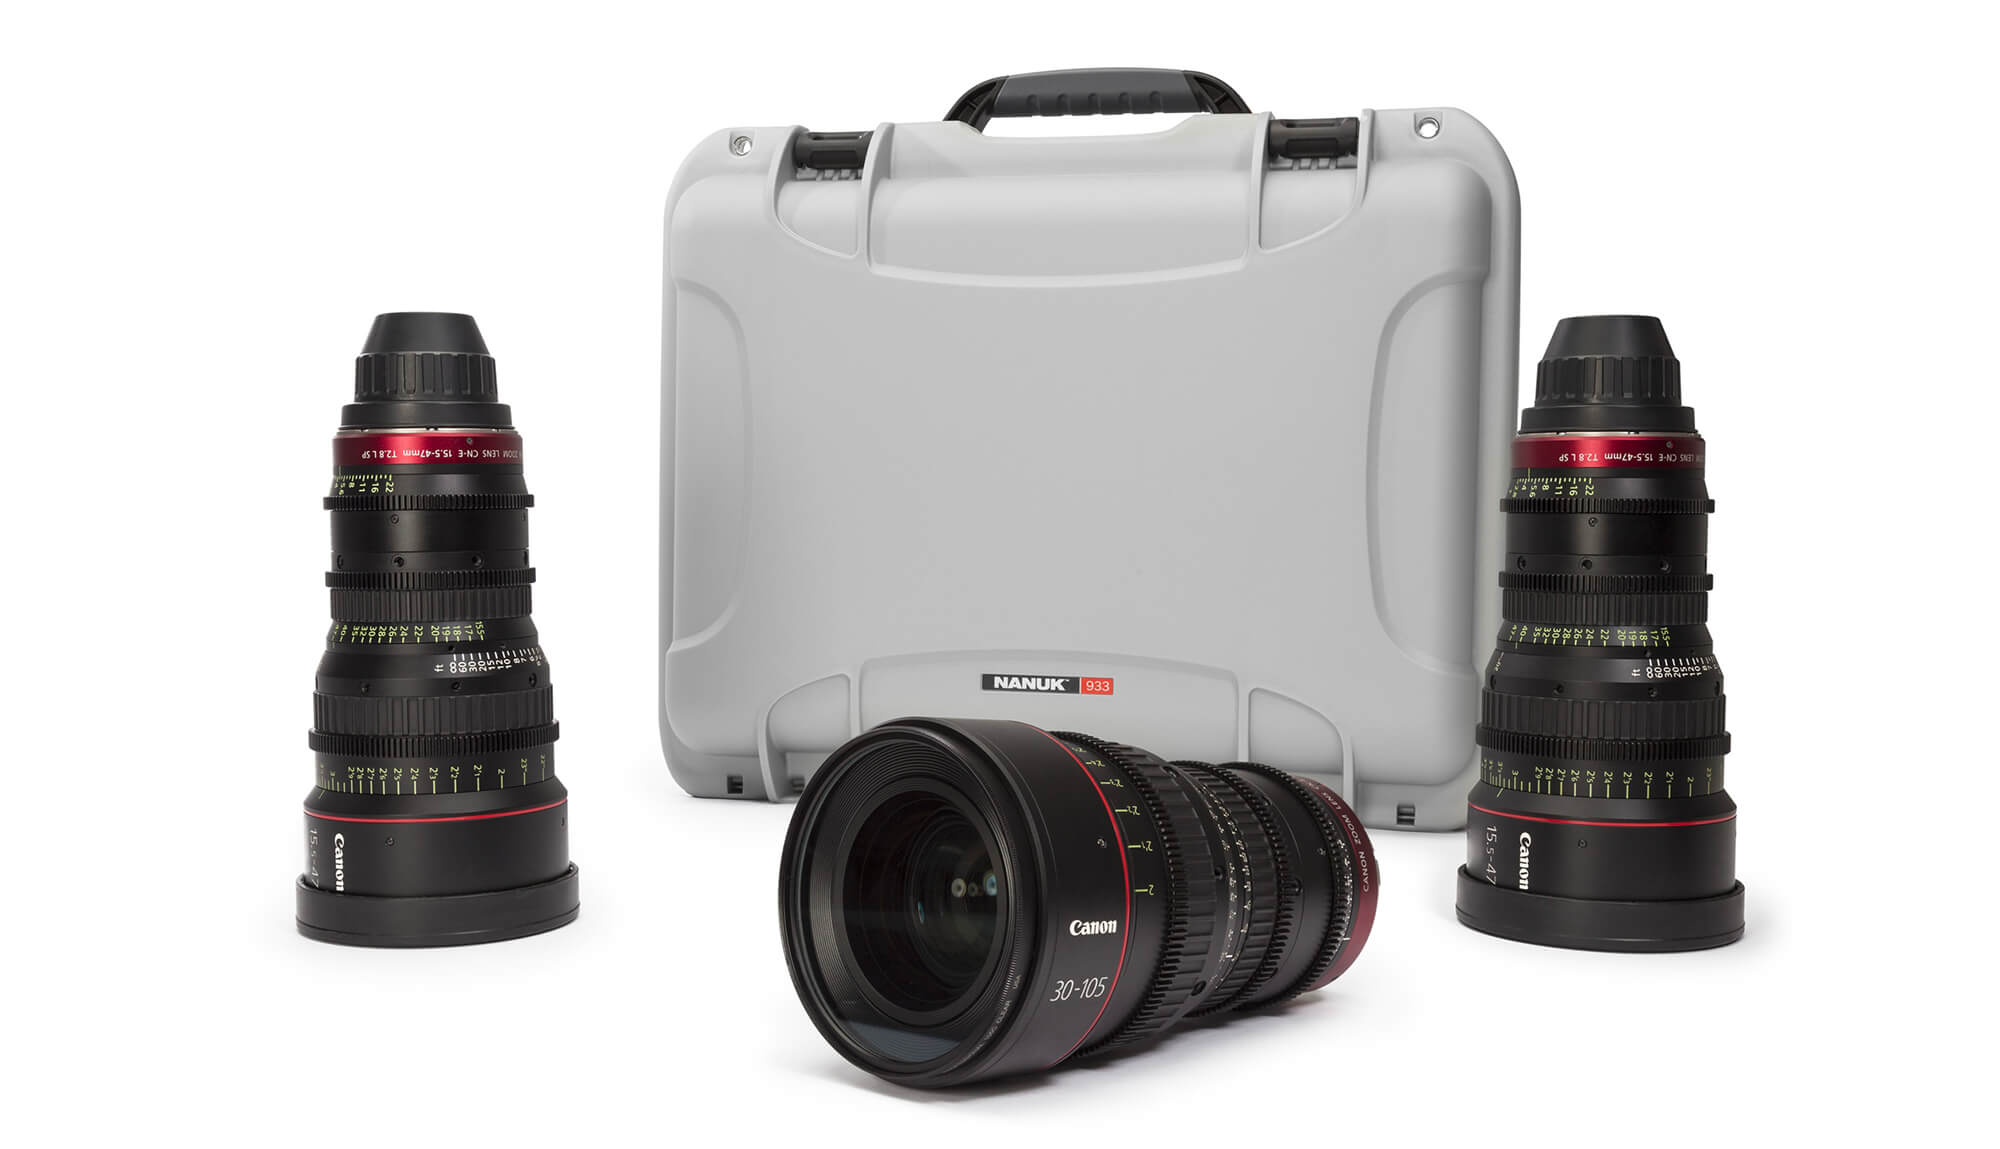 Nanuk 933 Hard Case for Camera Lenses